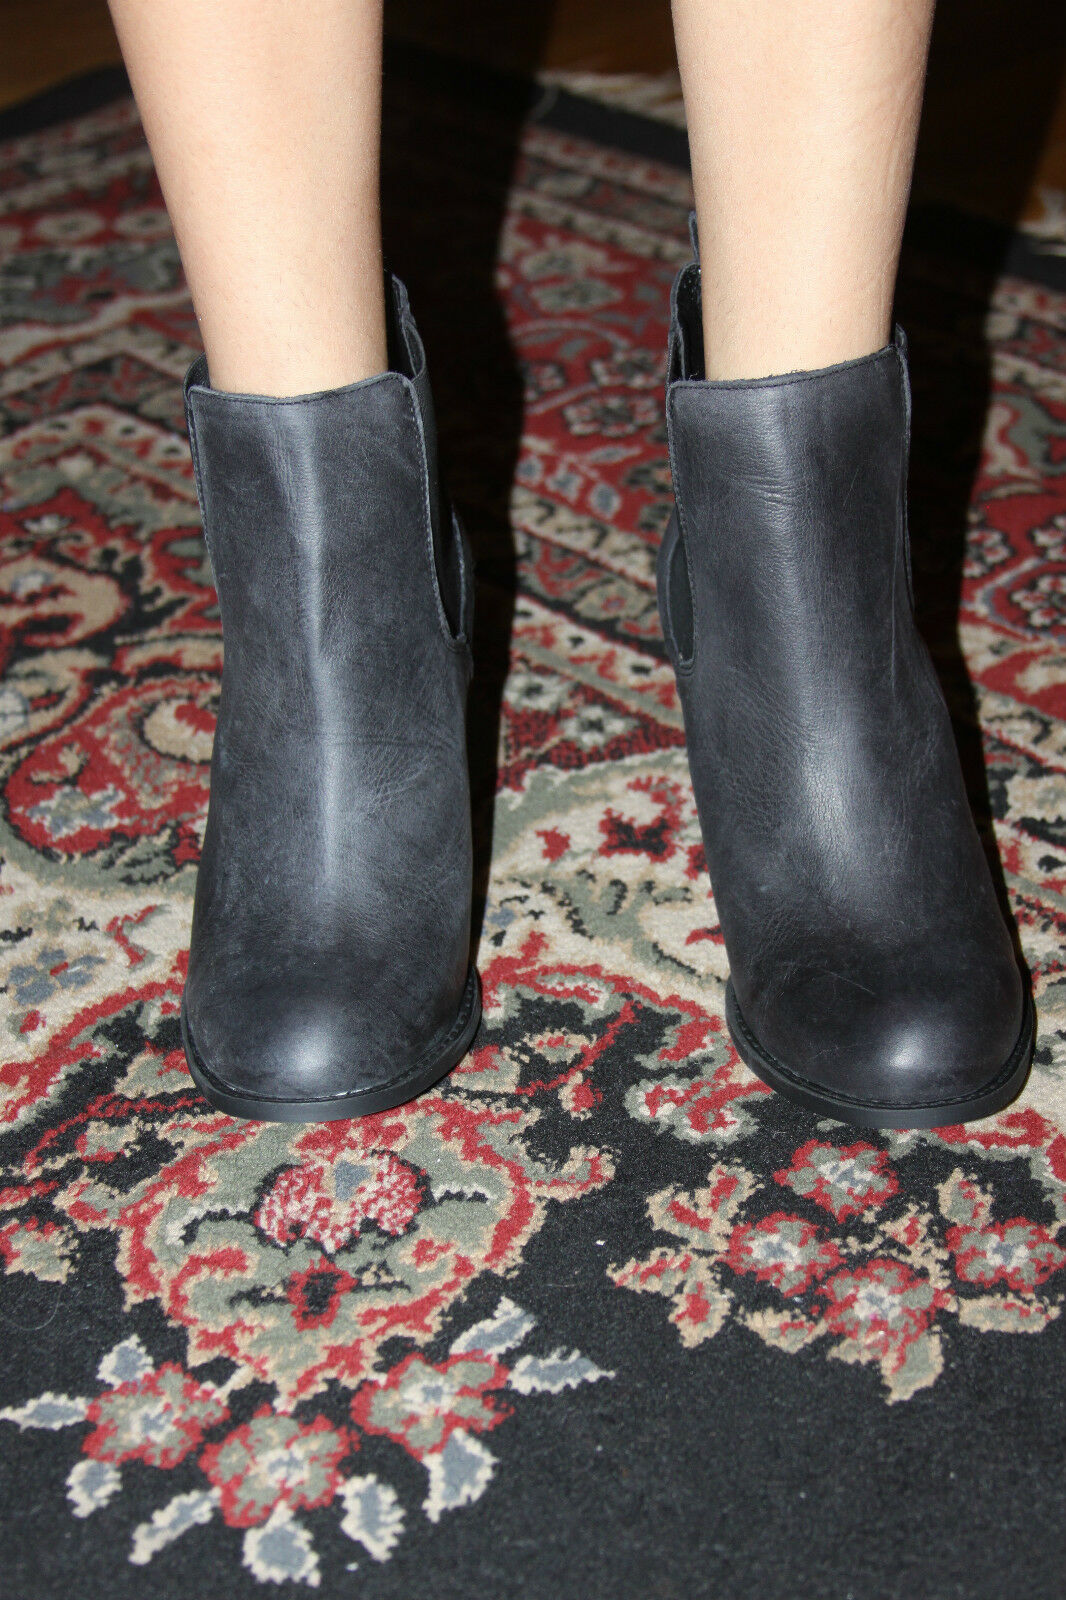 STEVE MADDEN LAMBII BLK NUBUCK ANKLE BOOT SIZE 8.5